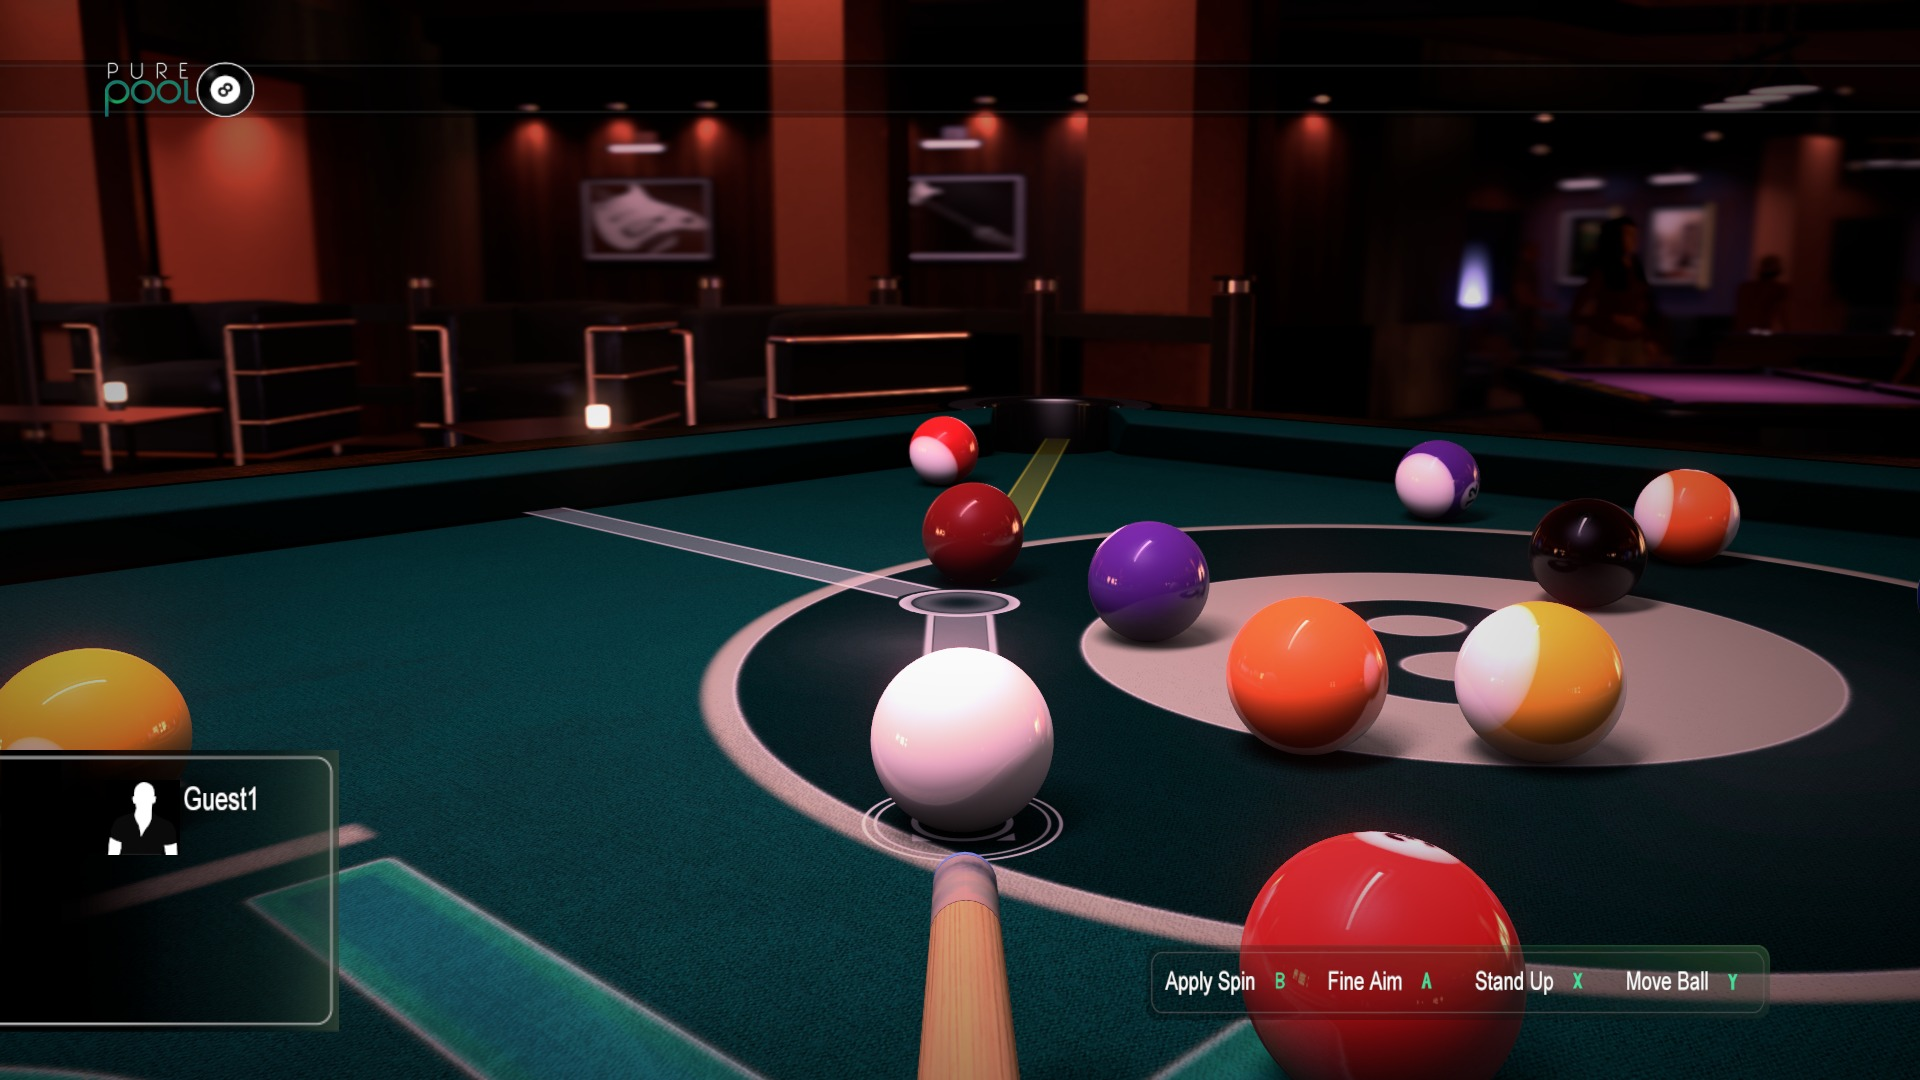 Pure Pool Xbox One screenshot (1)